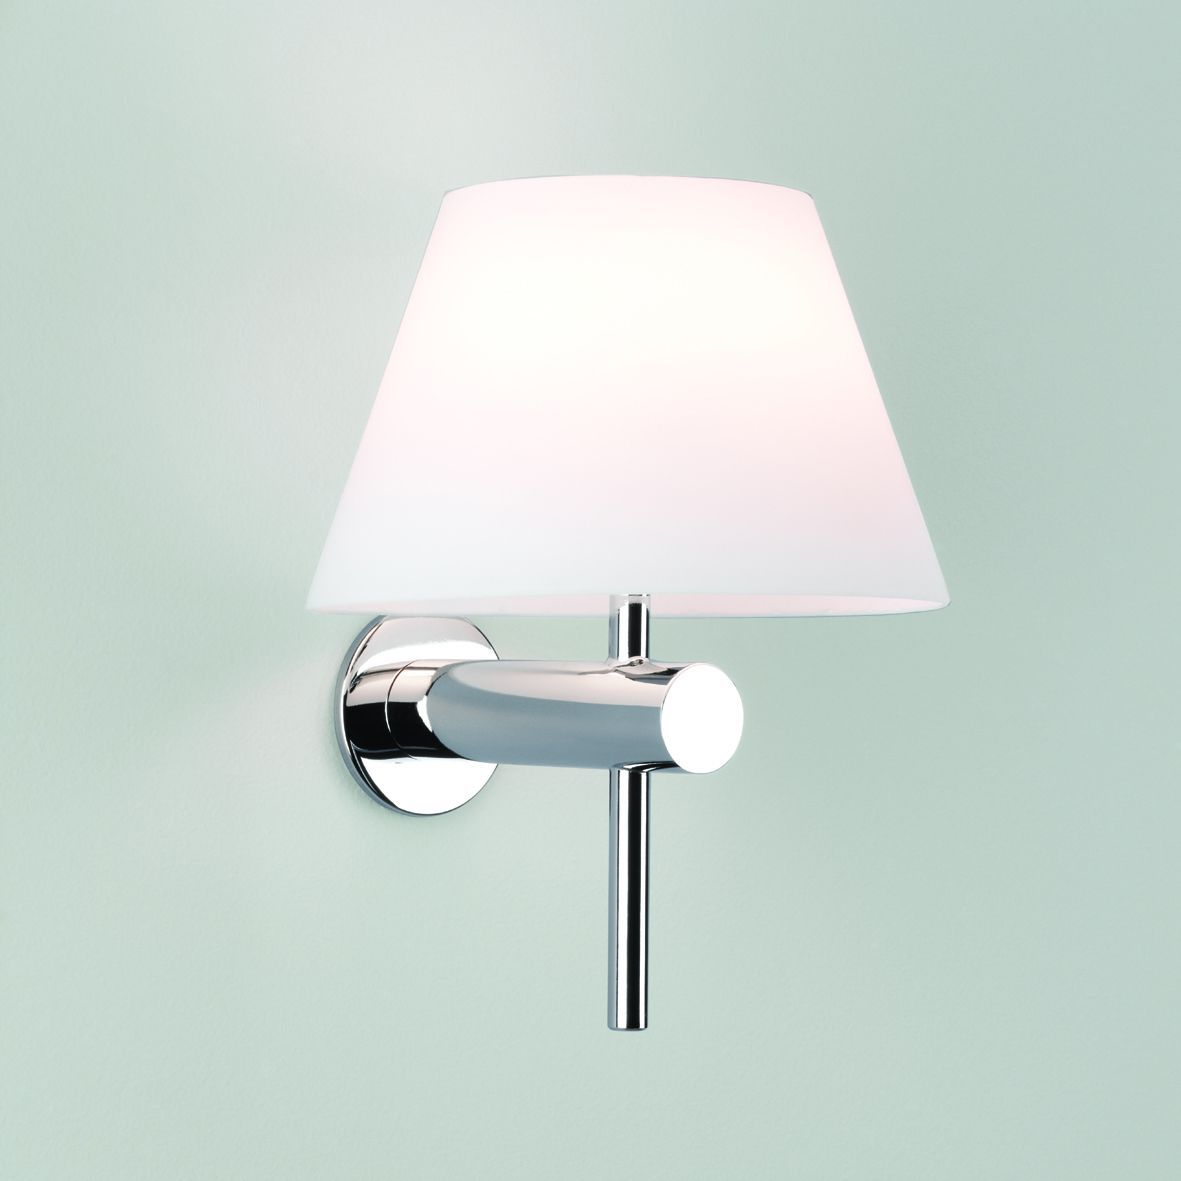 Bathroom wall light with coolie shade eclectic beach pinterest